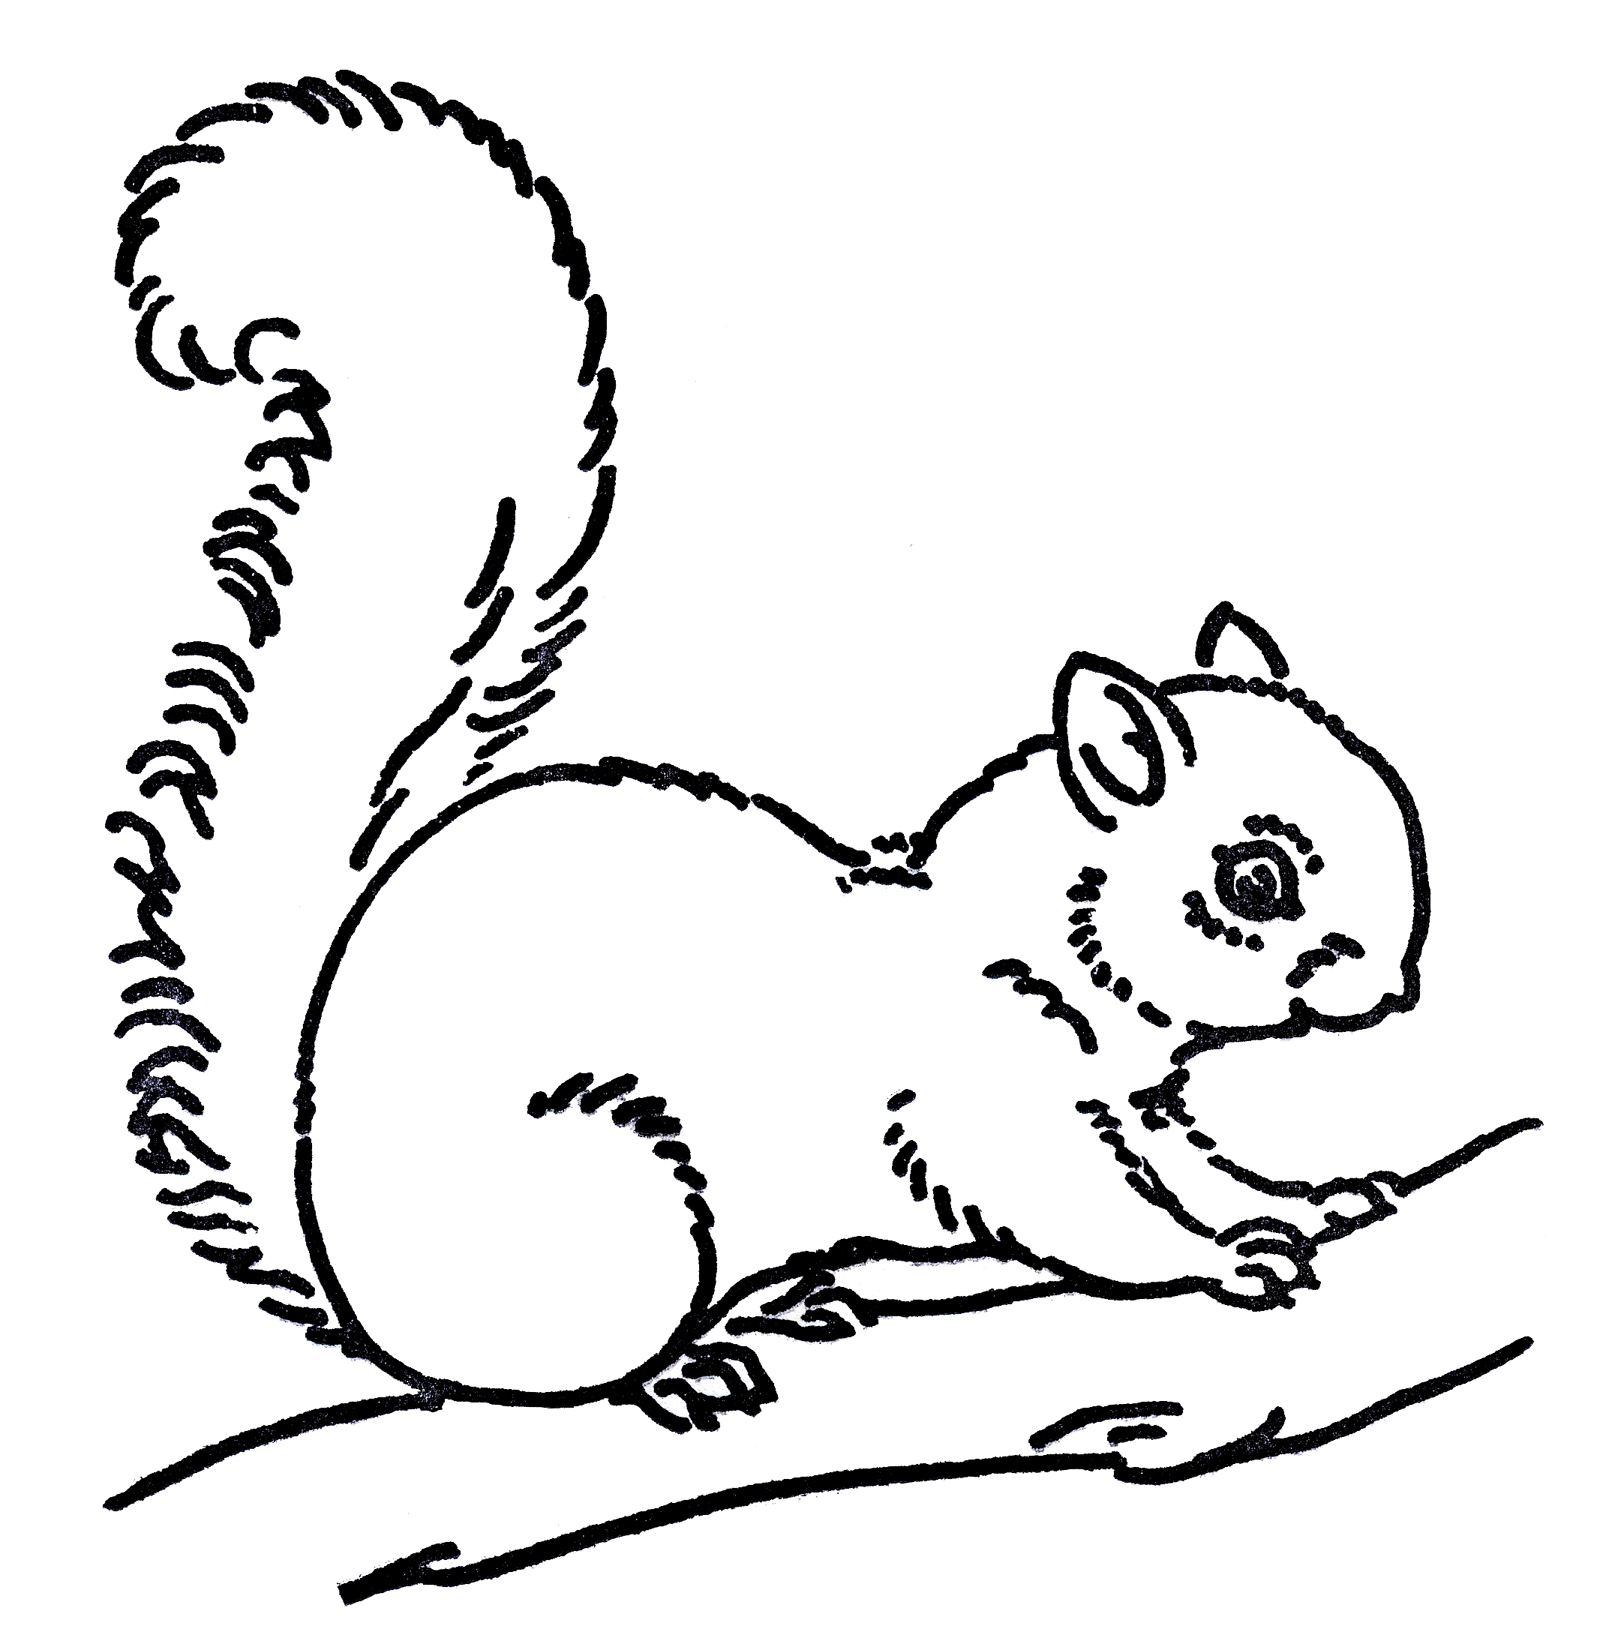 Line Drawing Squirrel : Squirrel line art graphicsfairy the graphics fairy